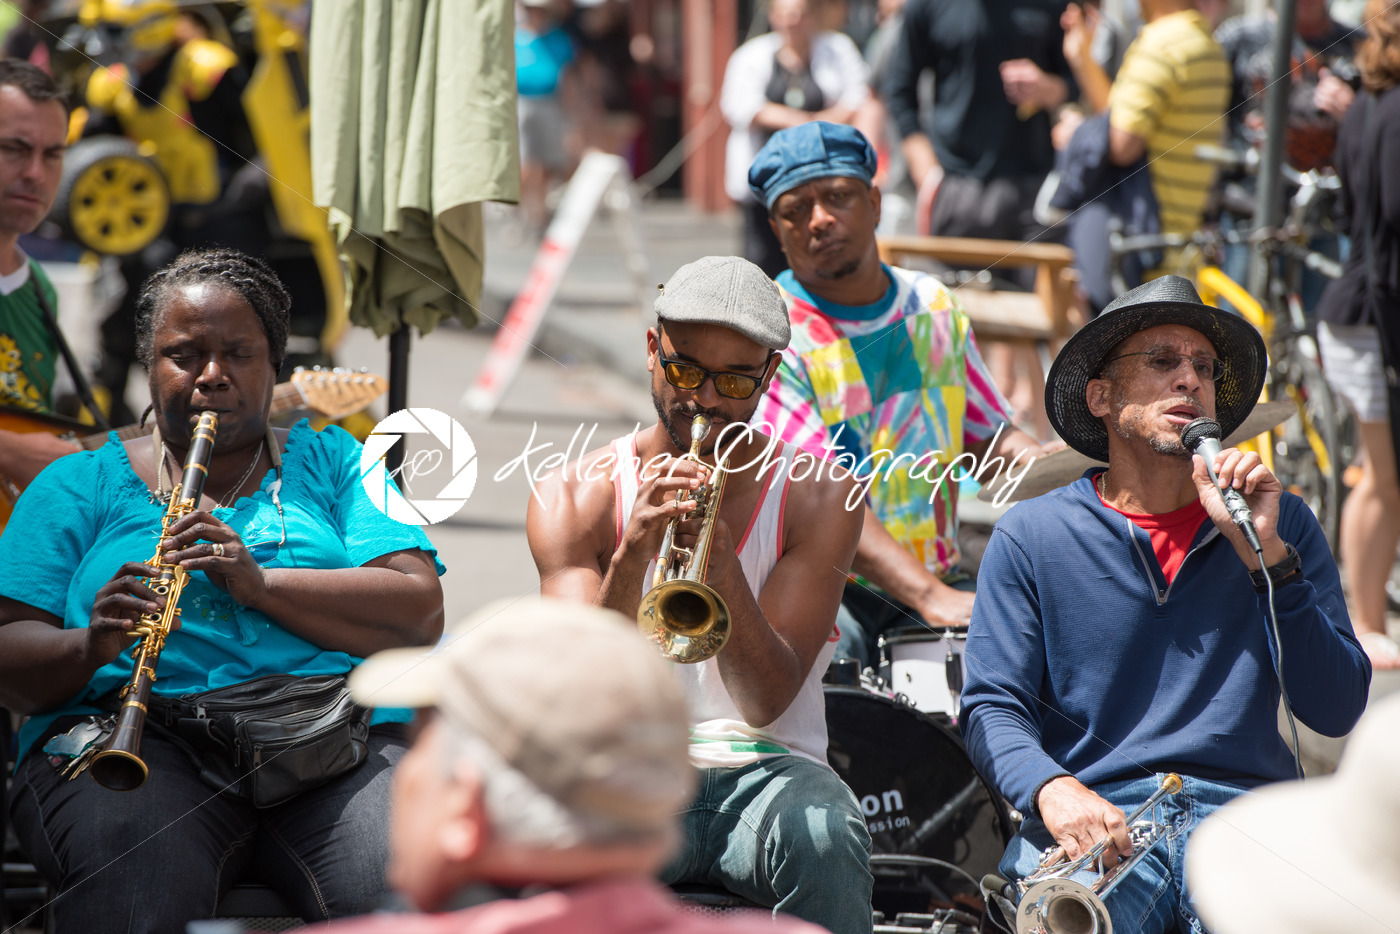 NEW ORLEANS – APRIL 13: In New Orleans, a jazz band plays jazz melodies in the street for donations from the tourists and locals passing by on April 13, 2014 - Kelleher Photography Store